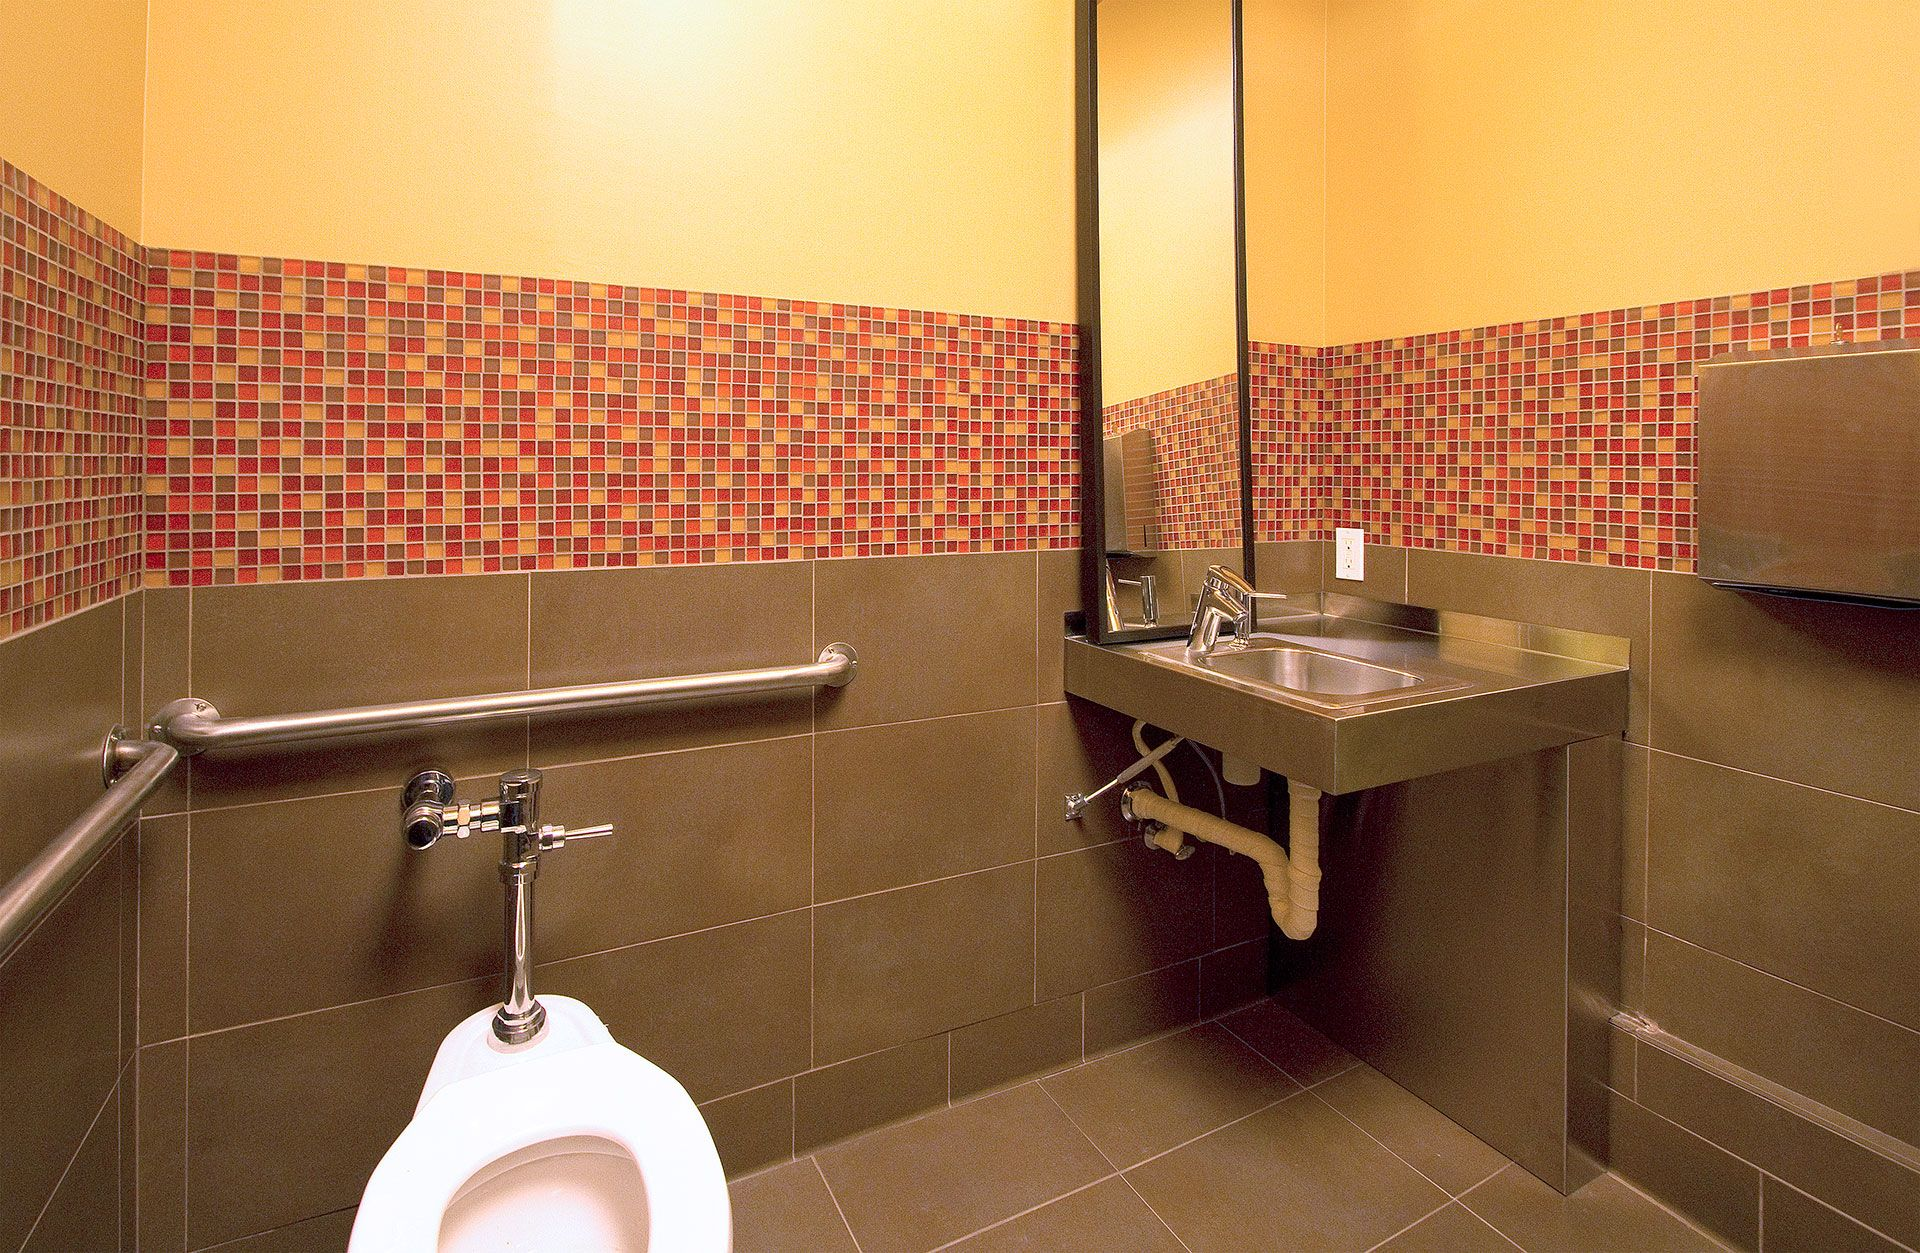 Restaurants restrooms design google search asia sf